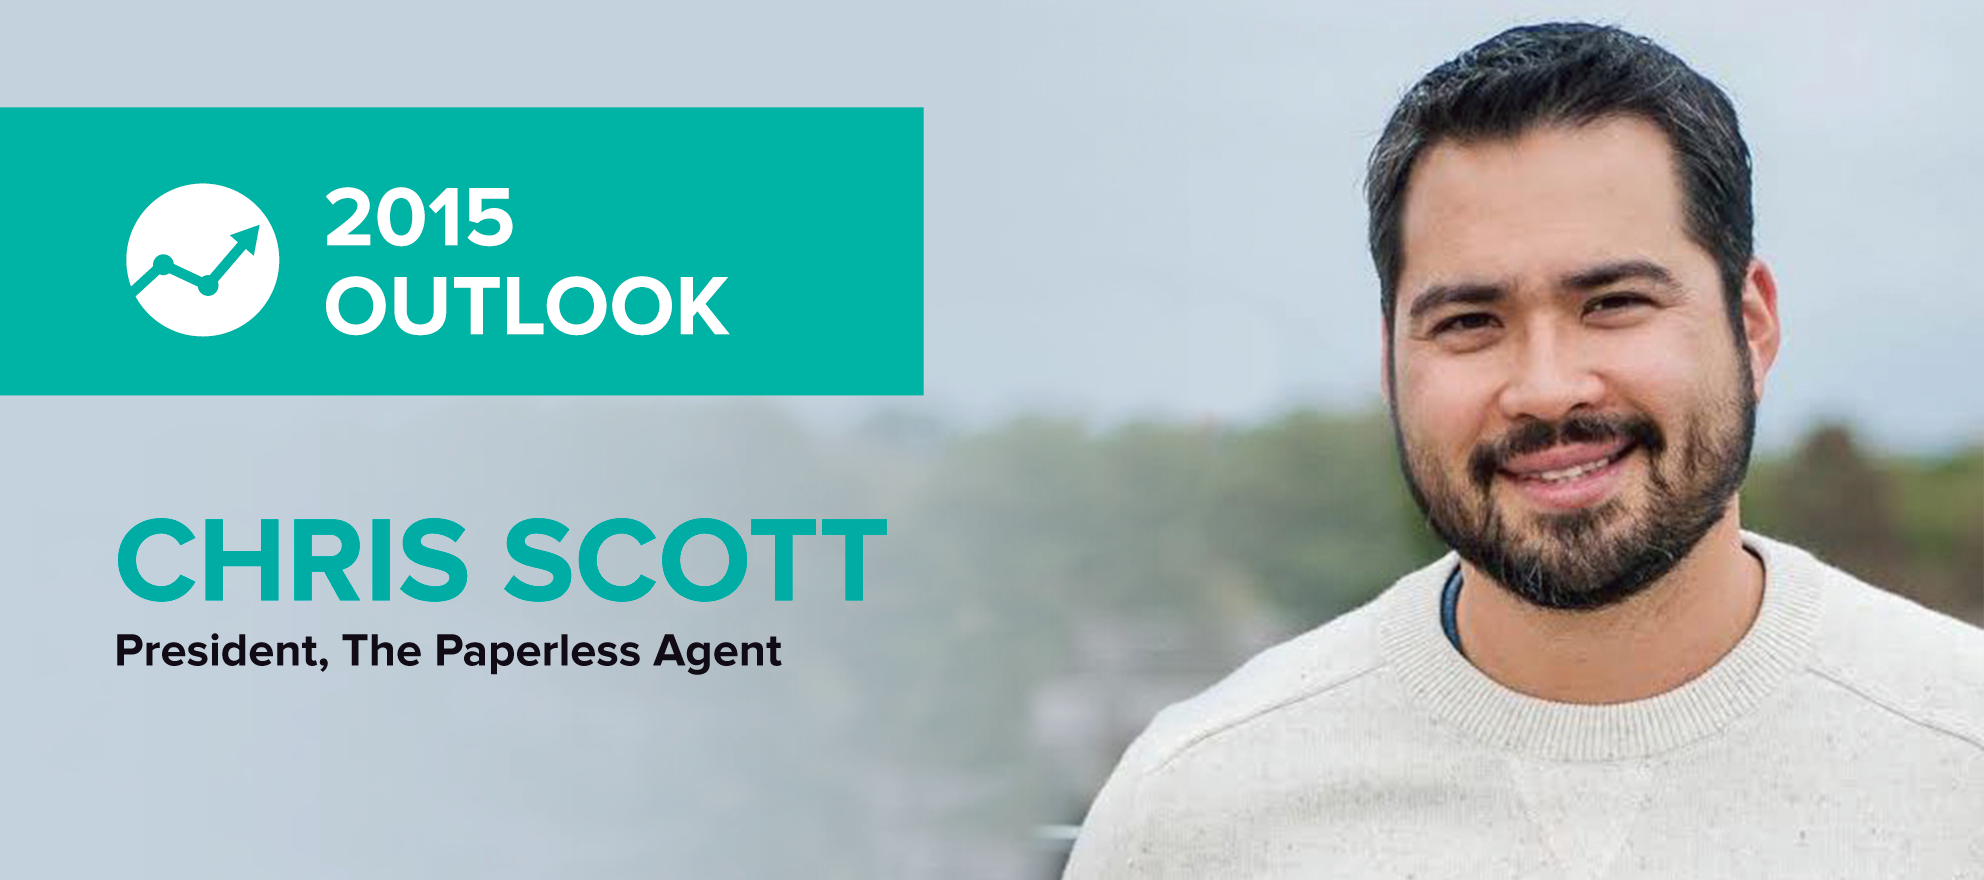 Chris Scott: 'We constantly adjust to stay ahead of the curve'